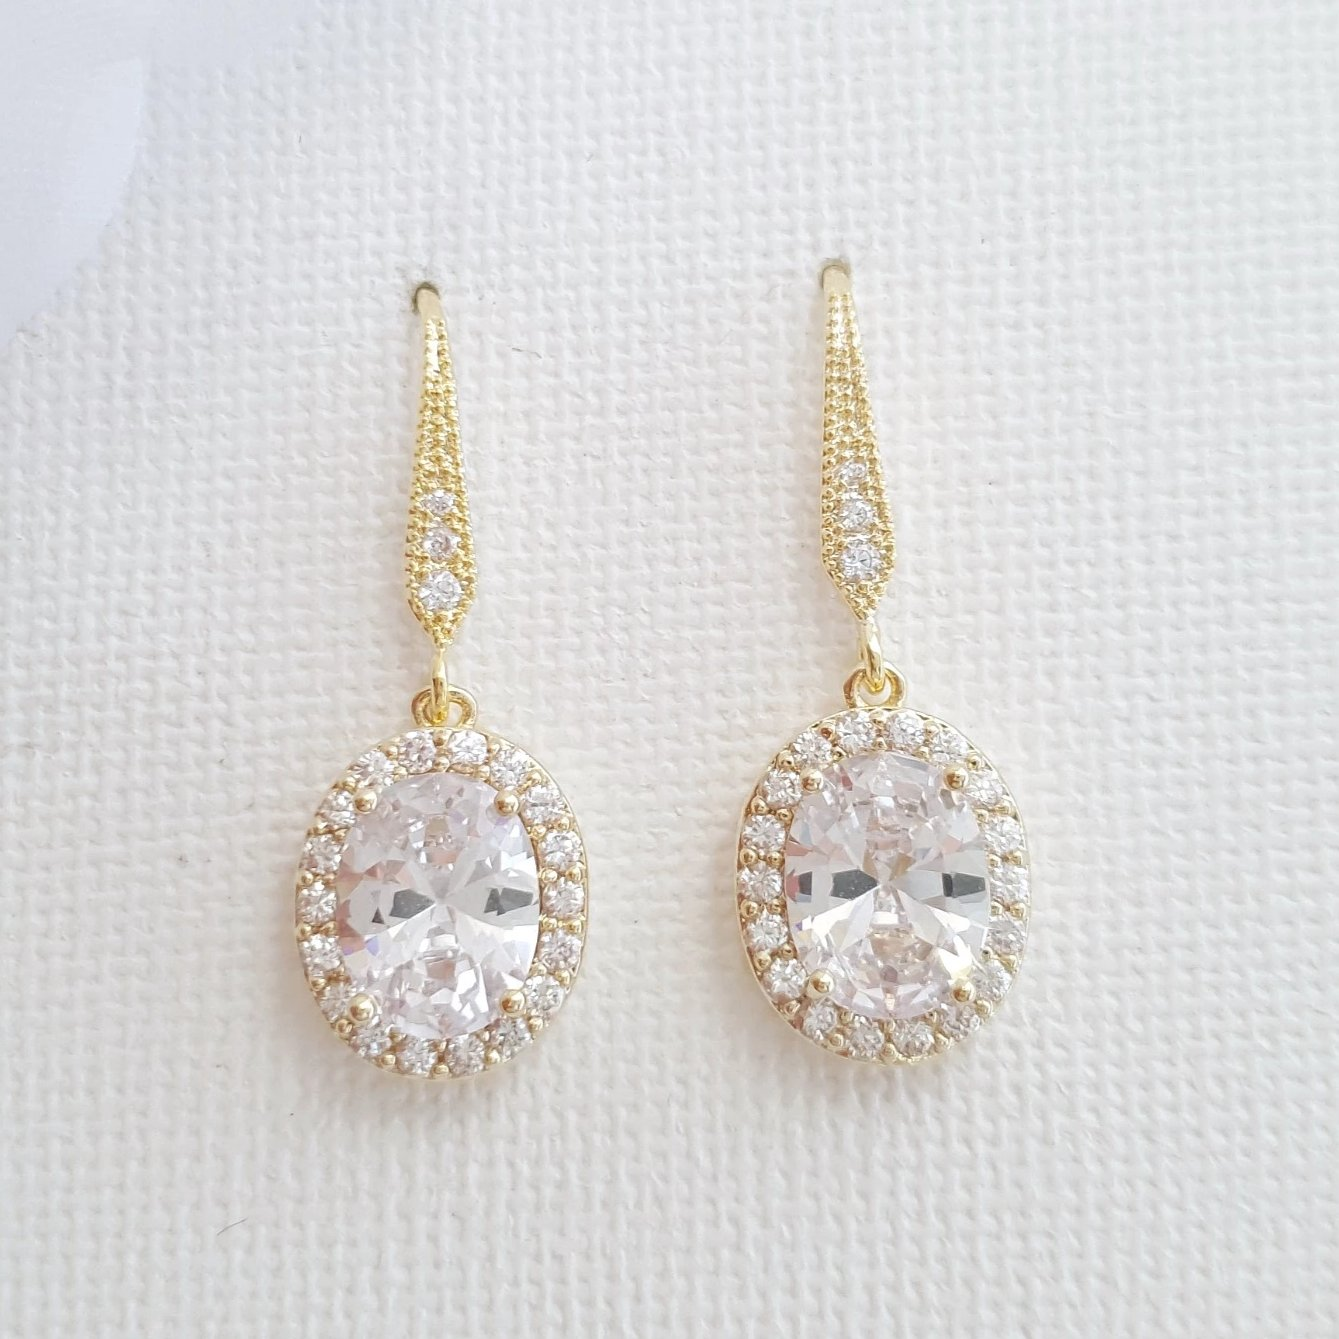 Small Gold Dangle Earrings With Oval CZ Drops-Emily - PoetryDesigns